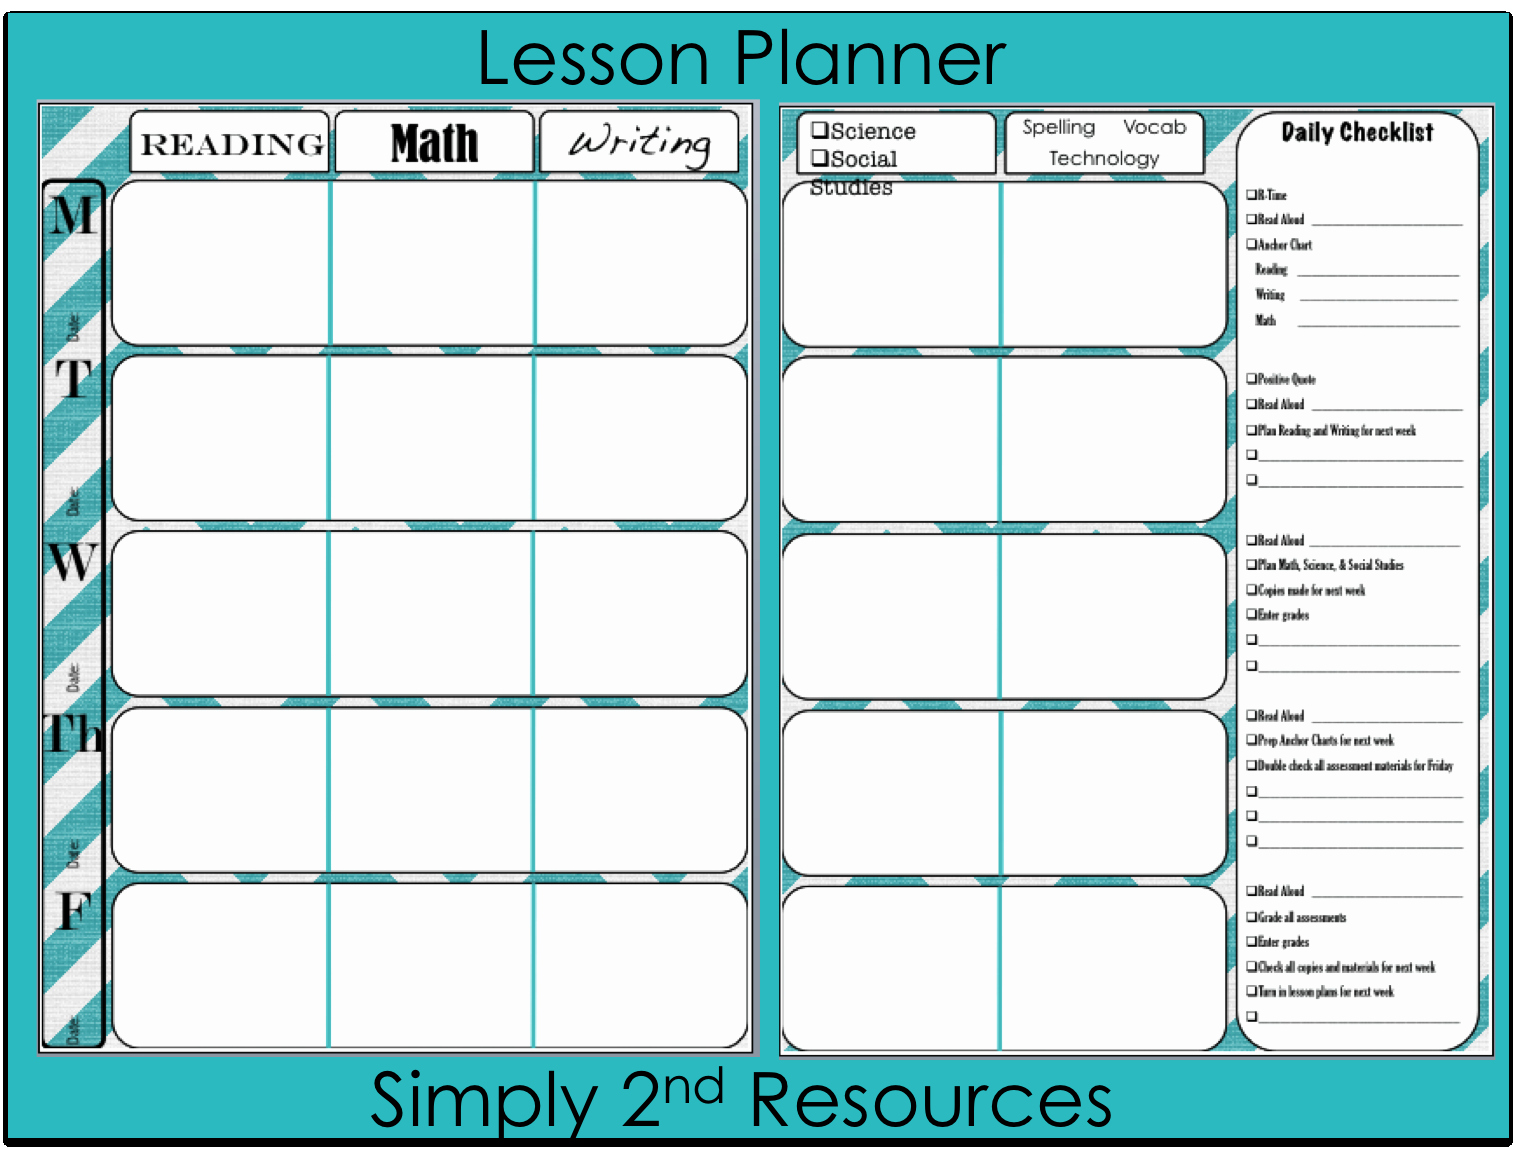 21st Century Lesson Plan Template Luxury Simply 2nd Resources Lesson Plan Template so Excited to